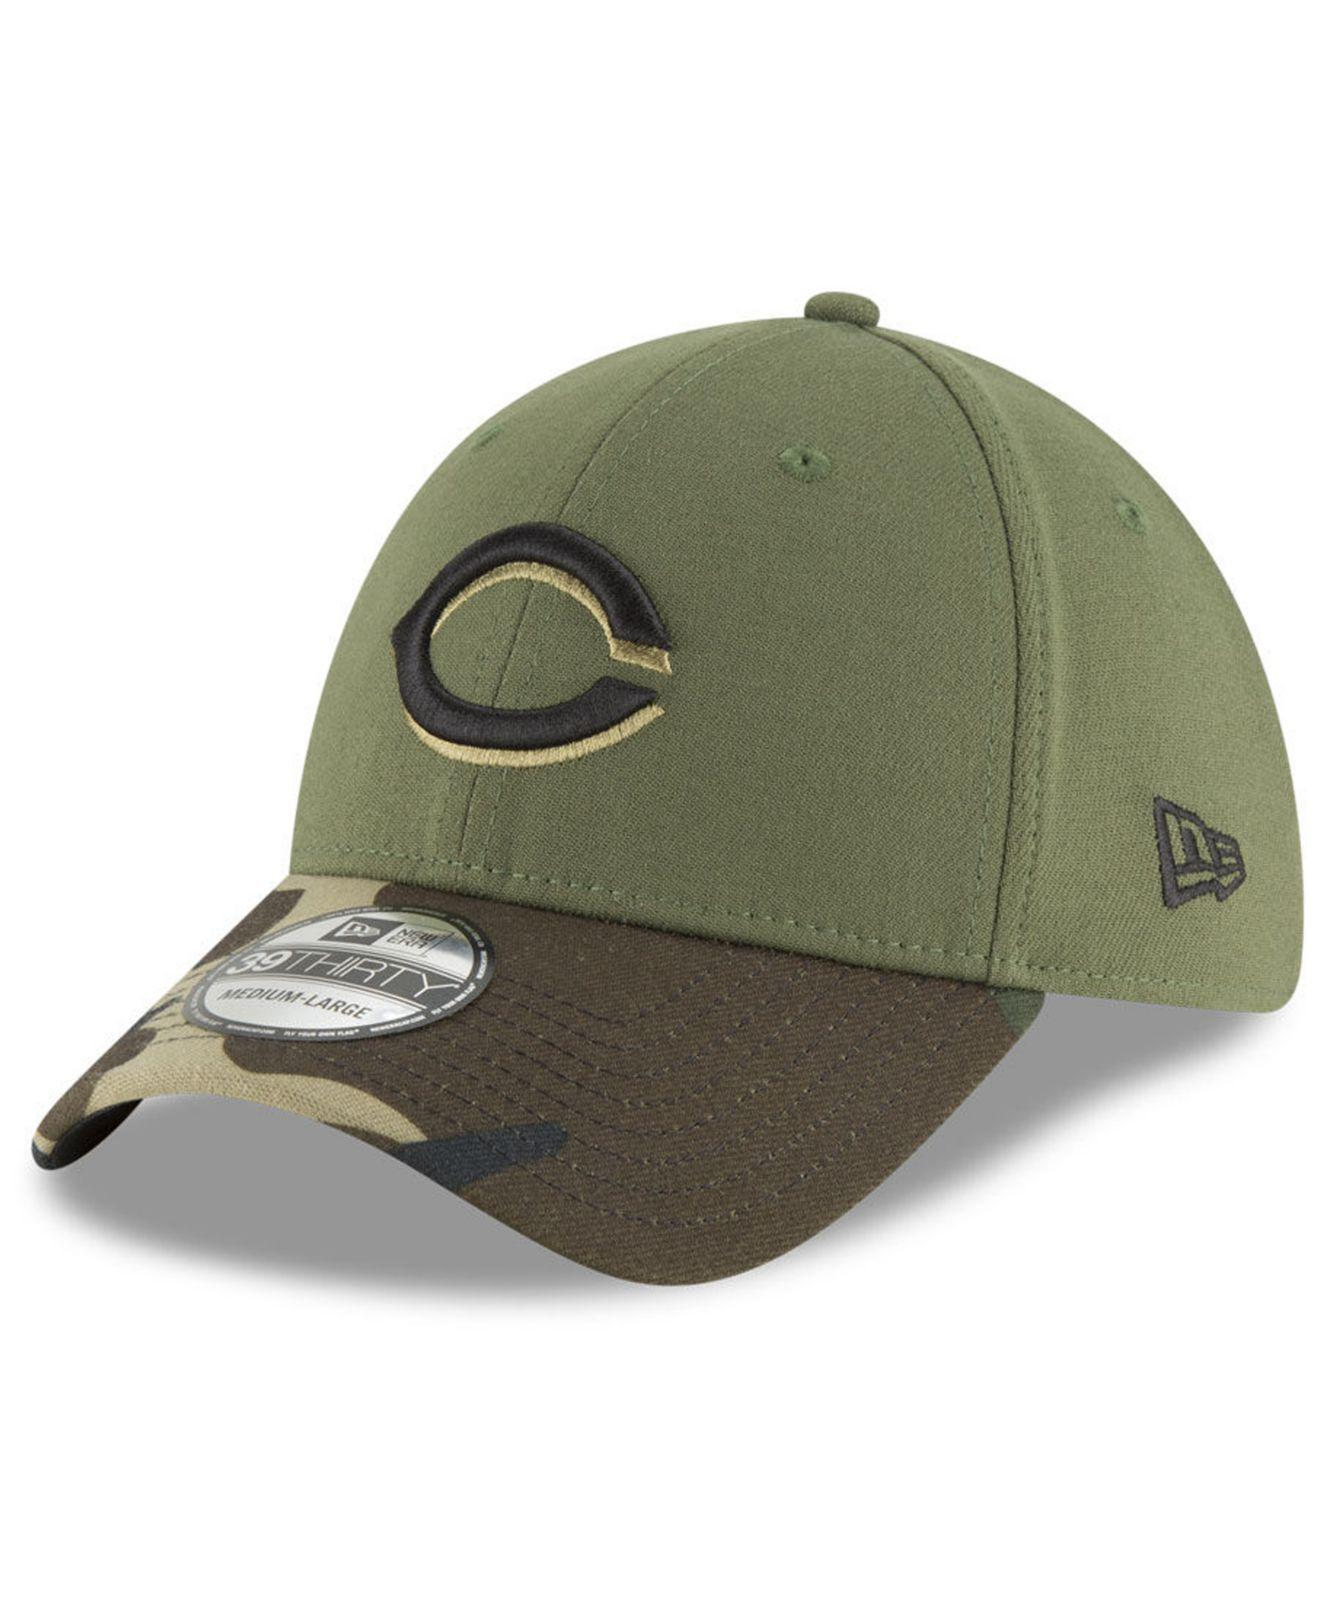 Lyst - KTZ Cincinnati Reds Team Classic 39thirty Cap in Green for Men 3c84edc464f0